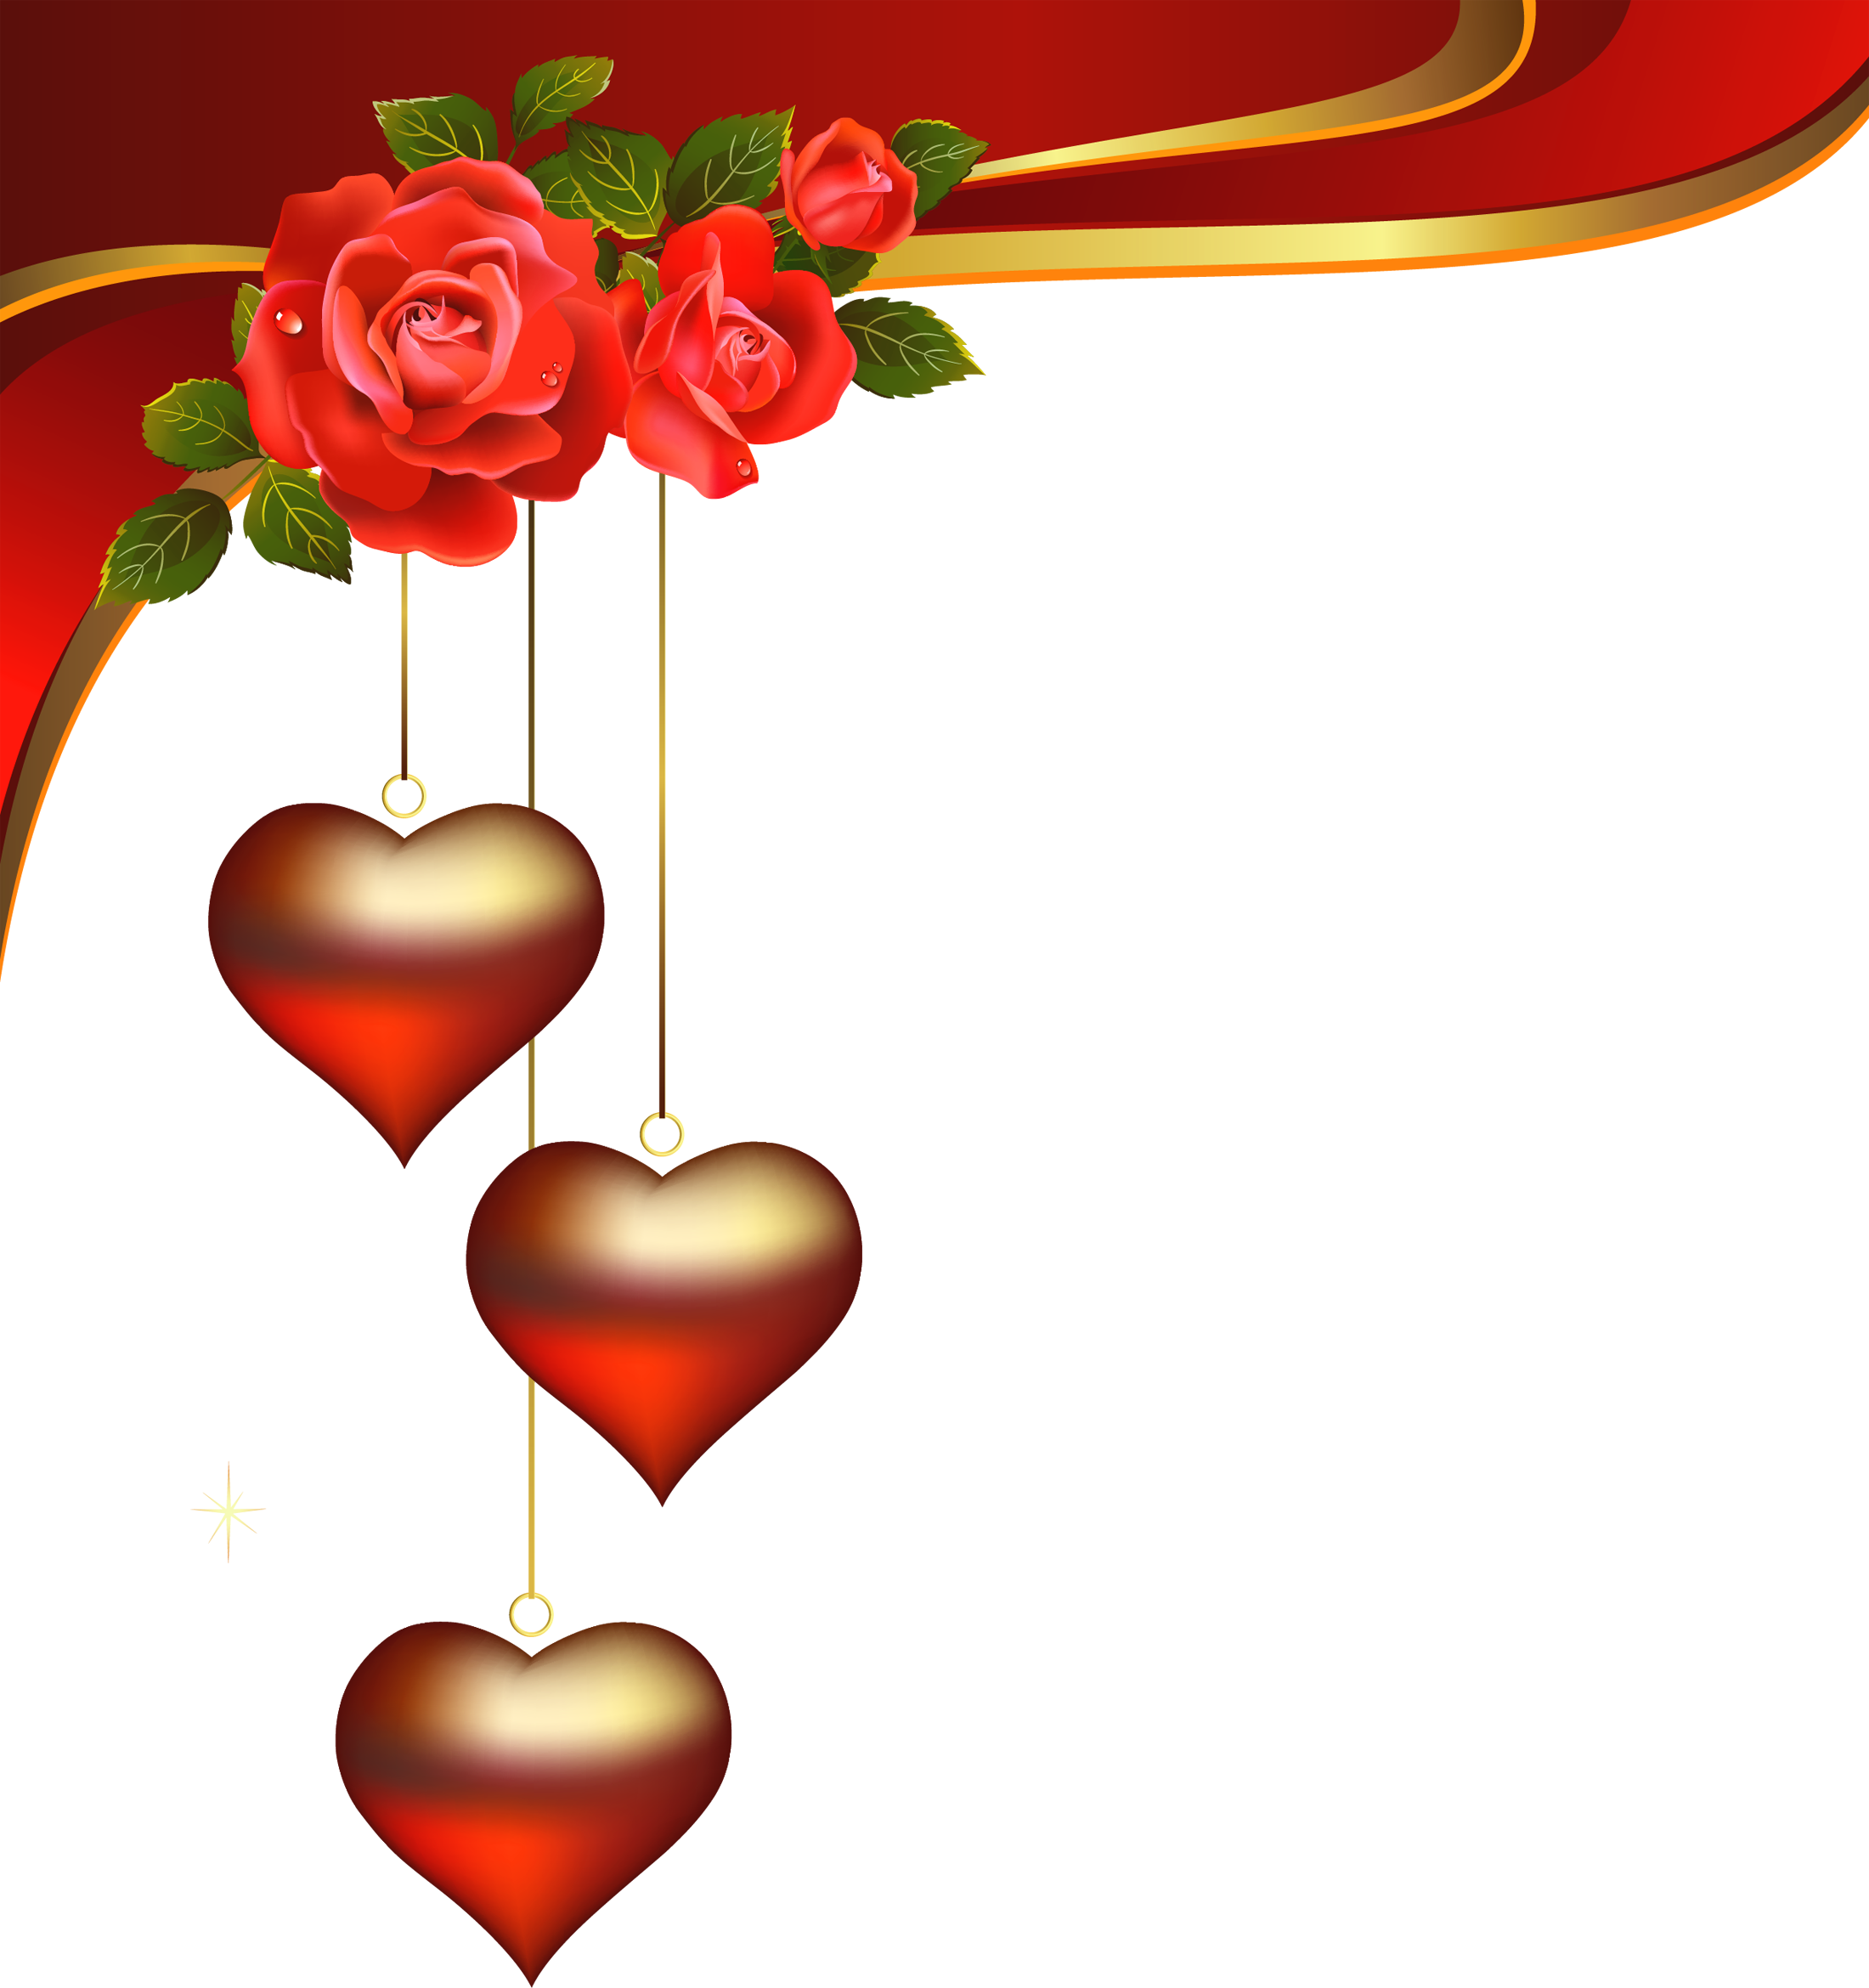 Photoshop clipart wedding heart Download Cliparts Png Art Free